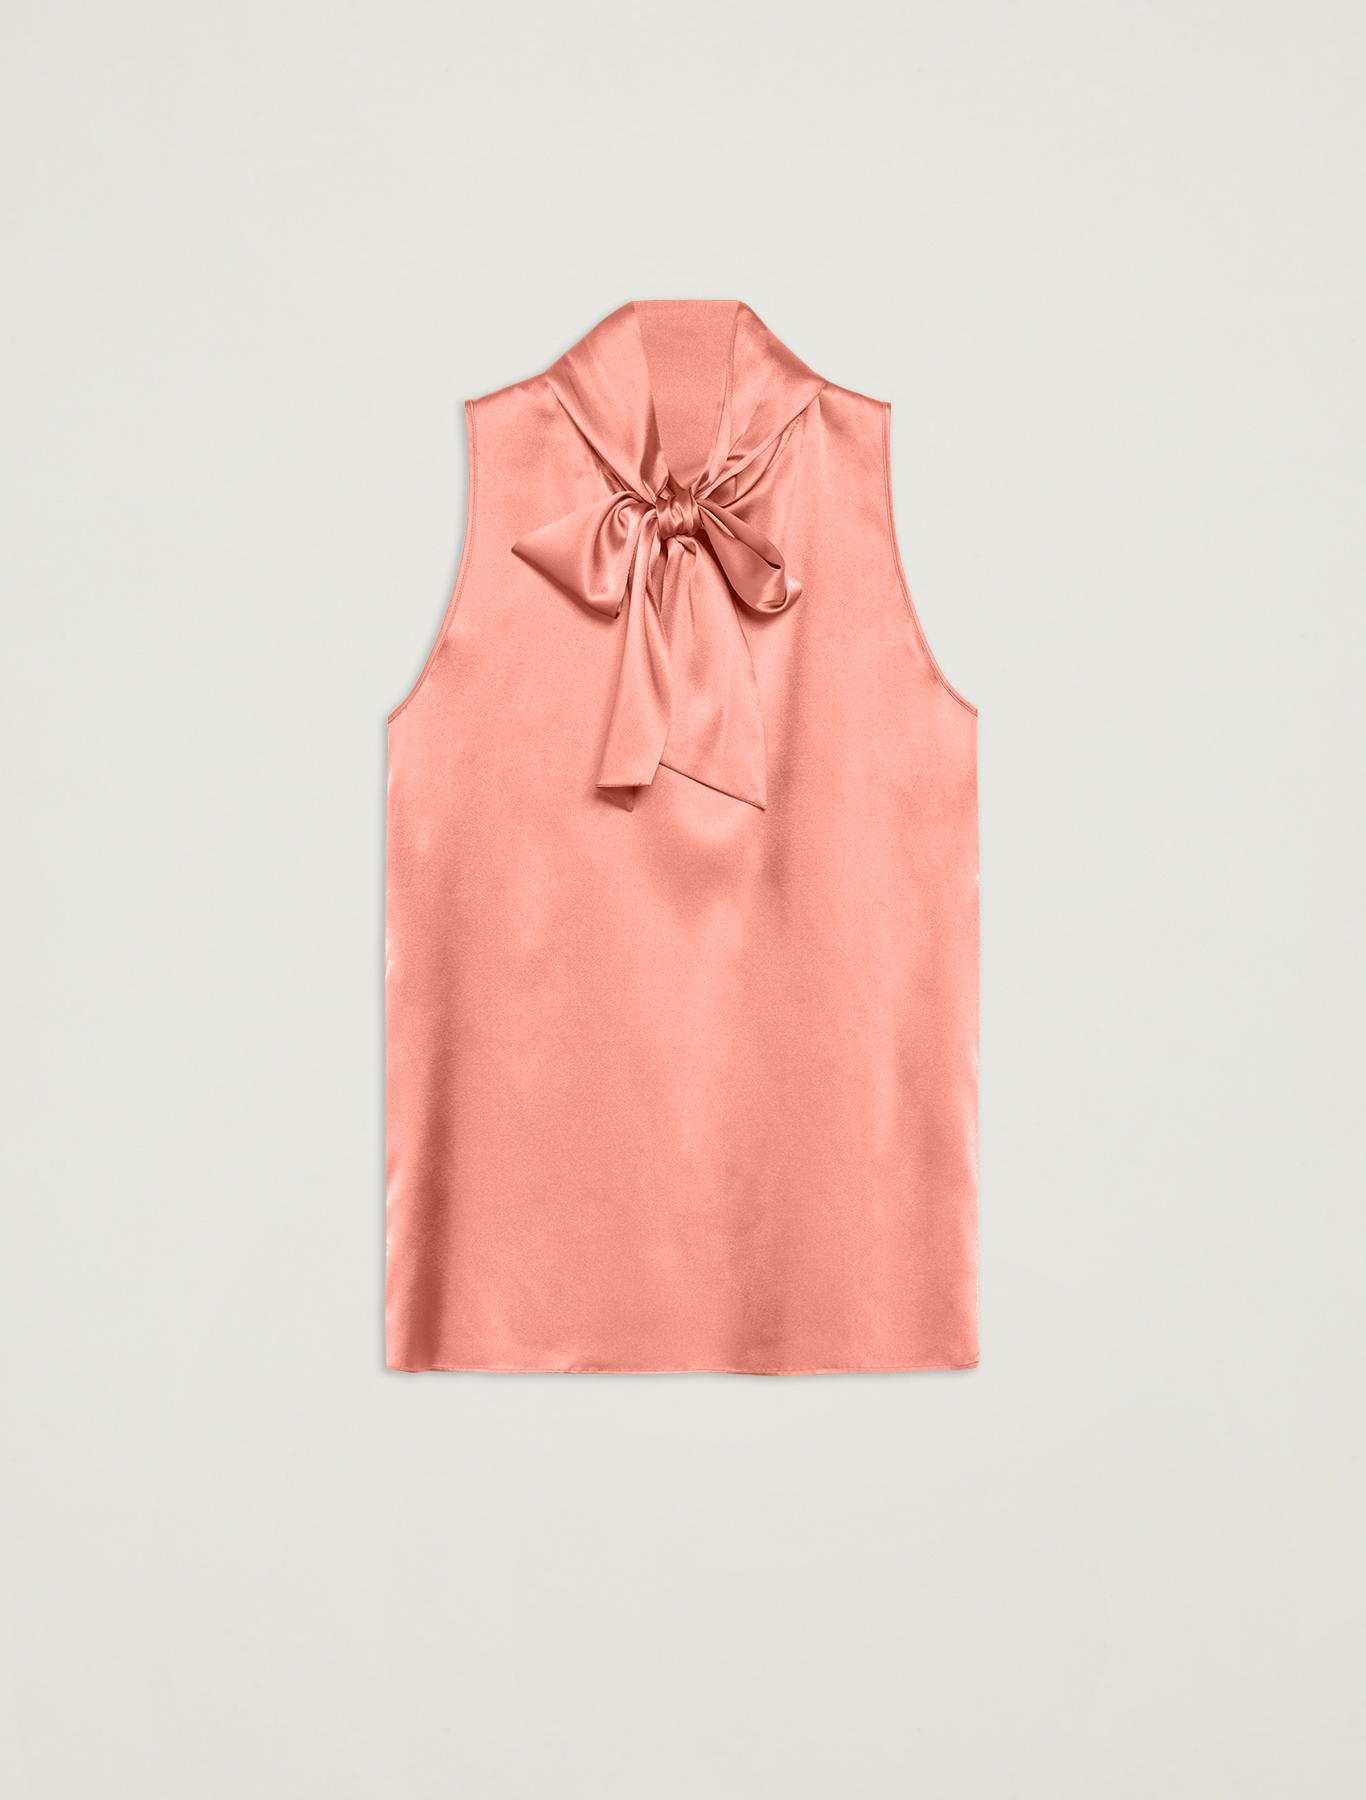 Silk top with neck bow - old rose - pennyblack